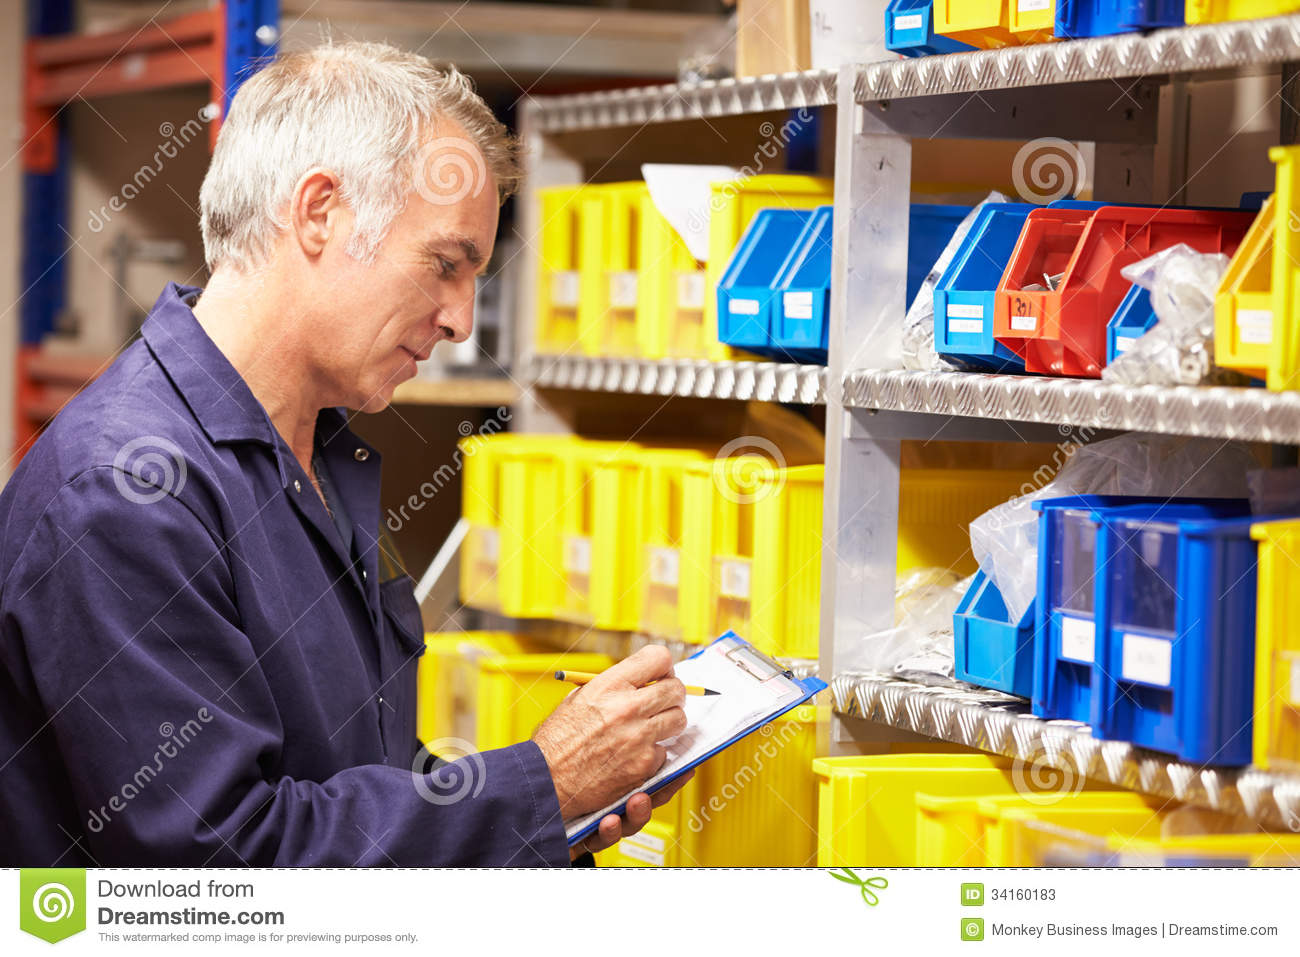 worker checking stock levels in store room stock photos image worker checking stock levels in store room